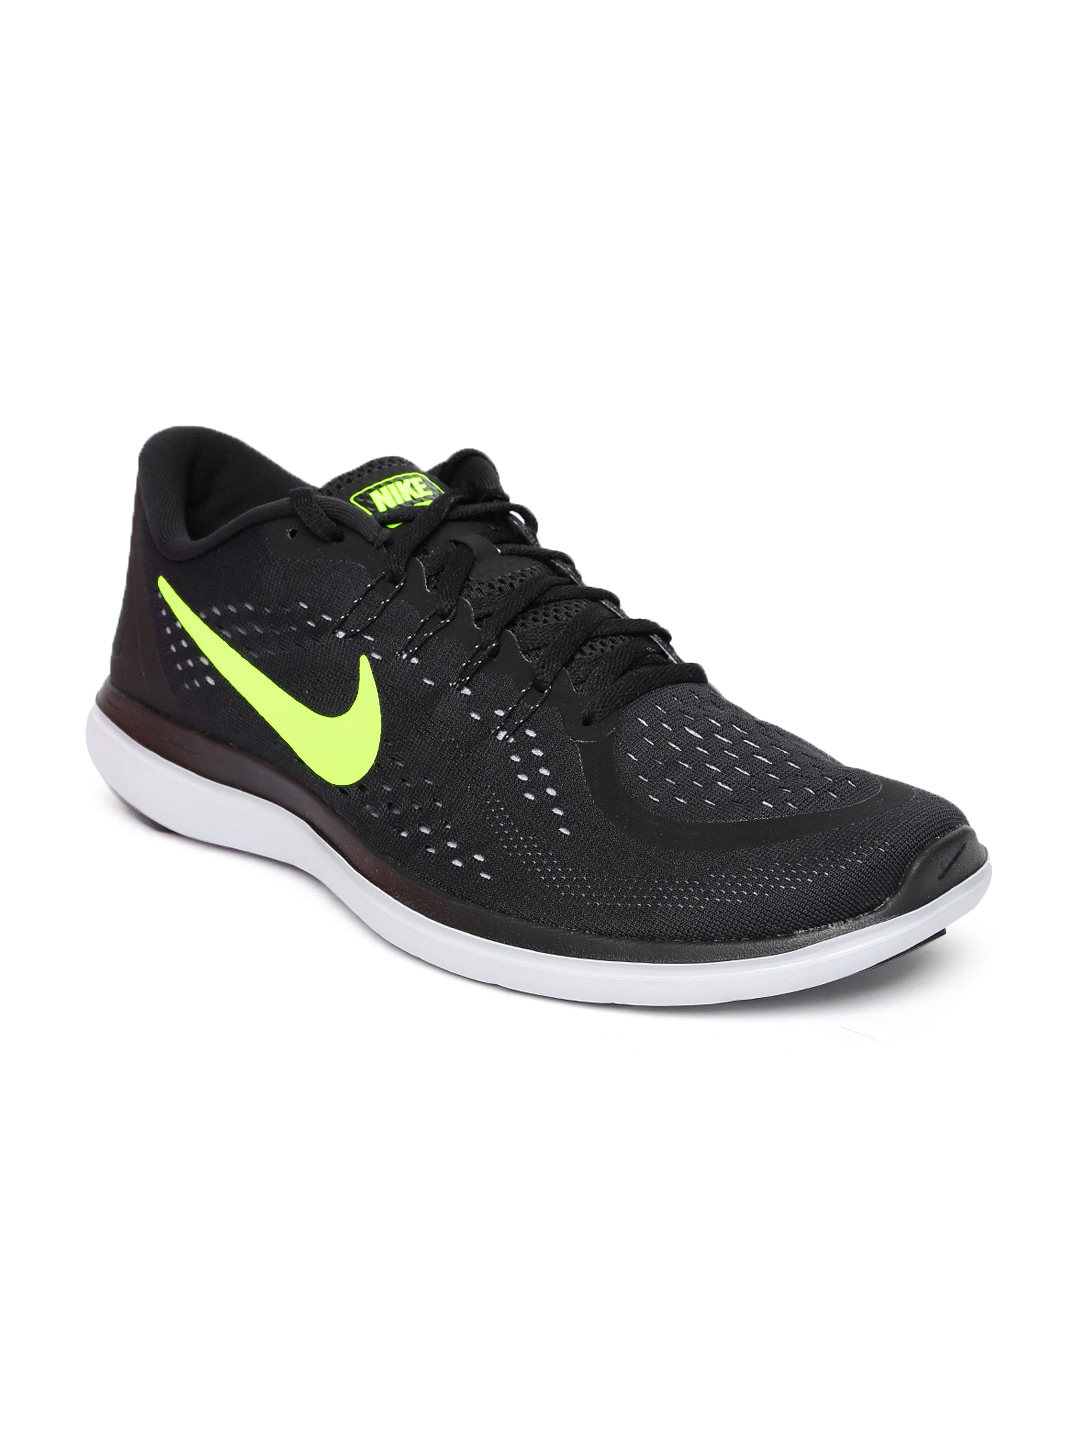 e5f6c0d08b84b Nike Flex 2017 - Buy Nike Flex 2017 online in India